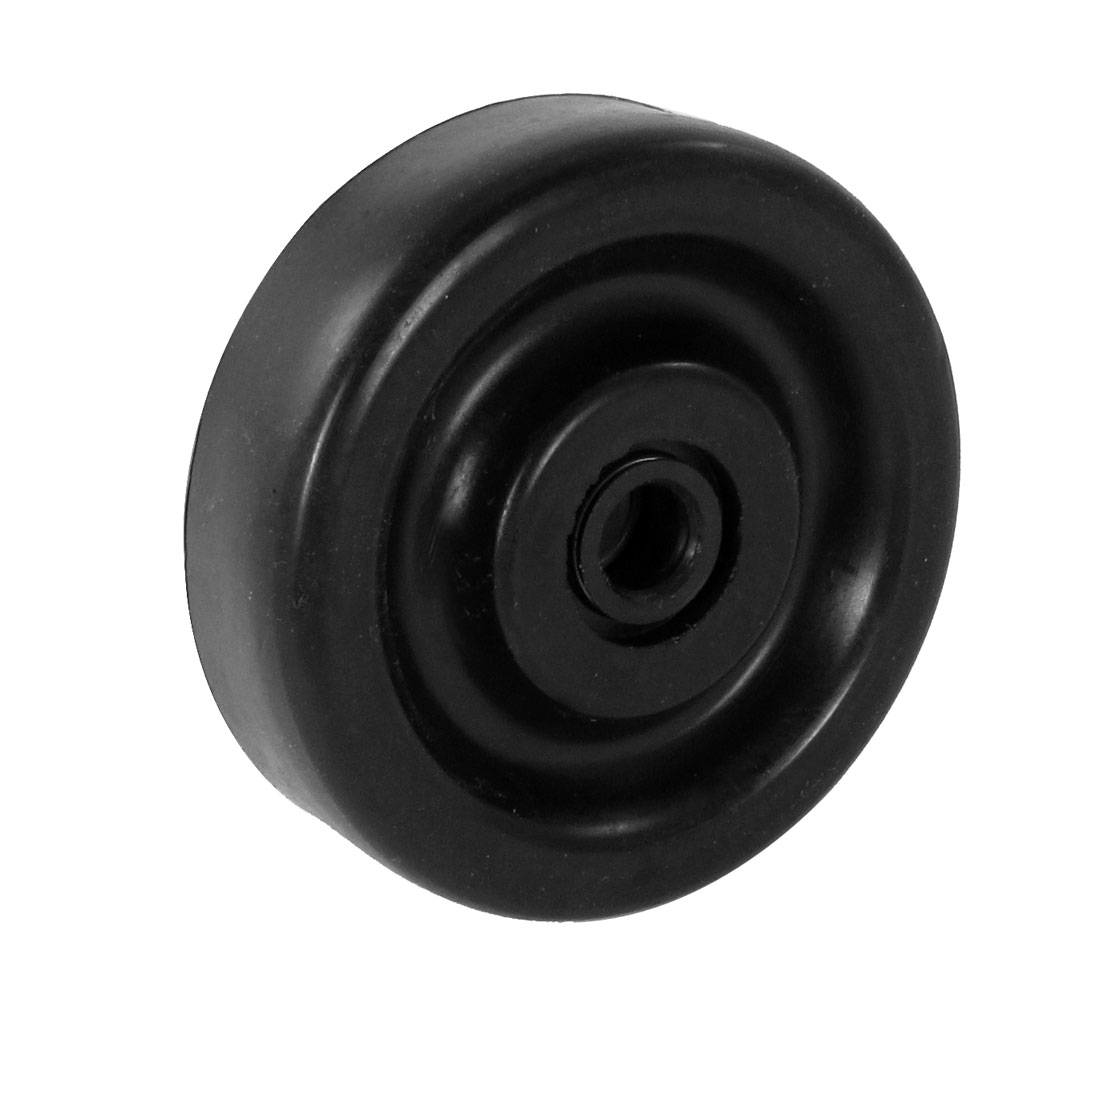 82mm Outer Dia Rubber Buffer Washer Water Seal for Washing Machine